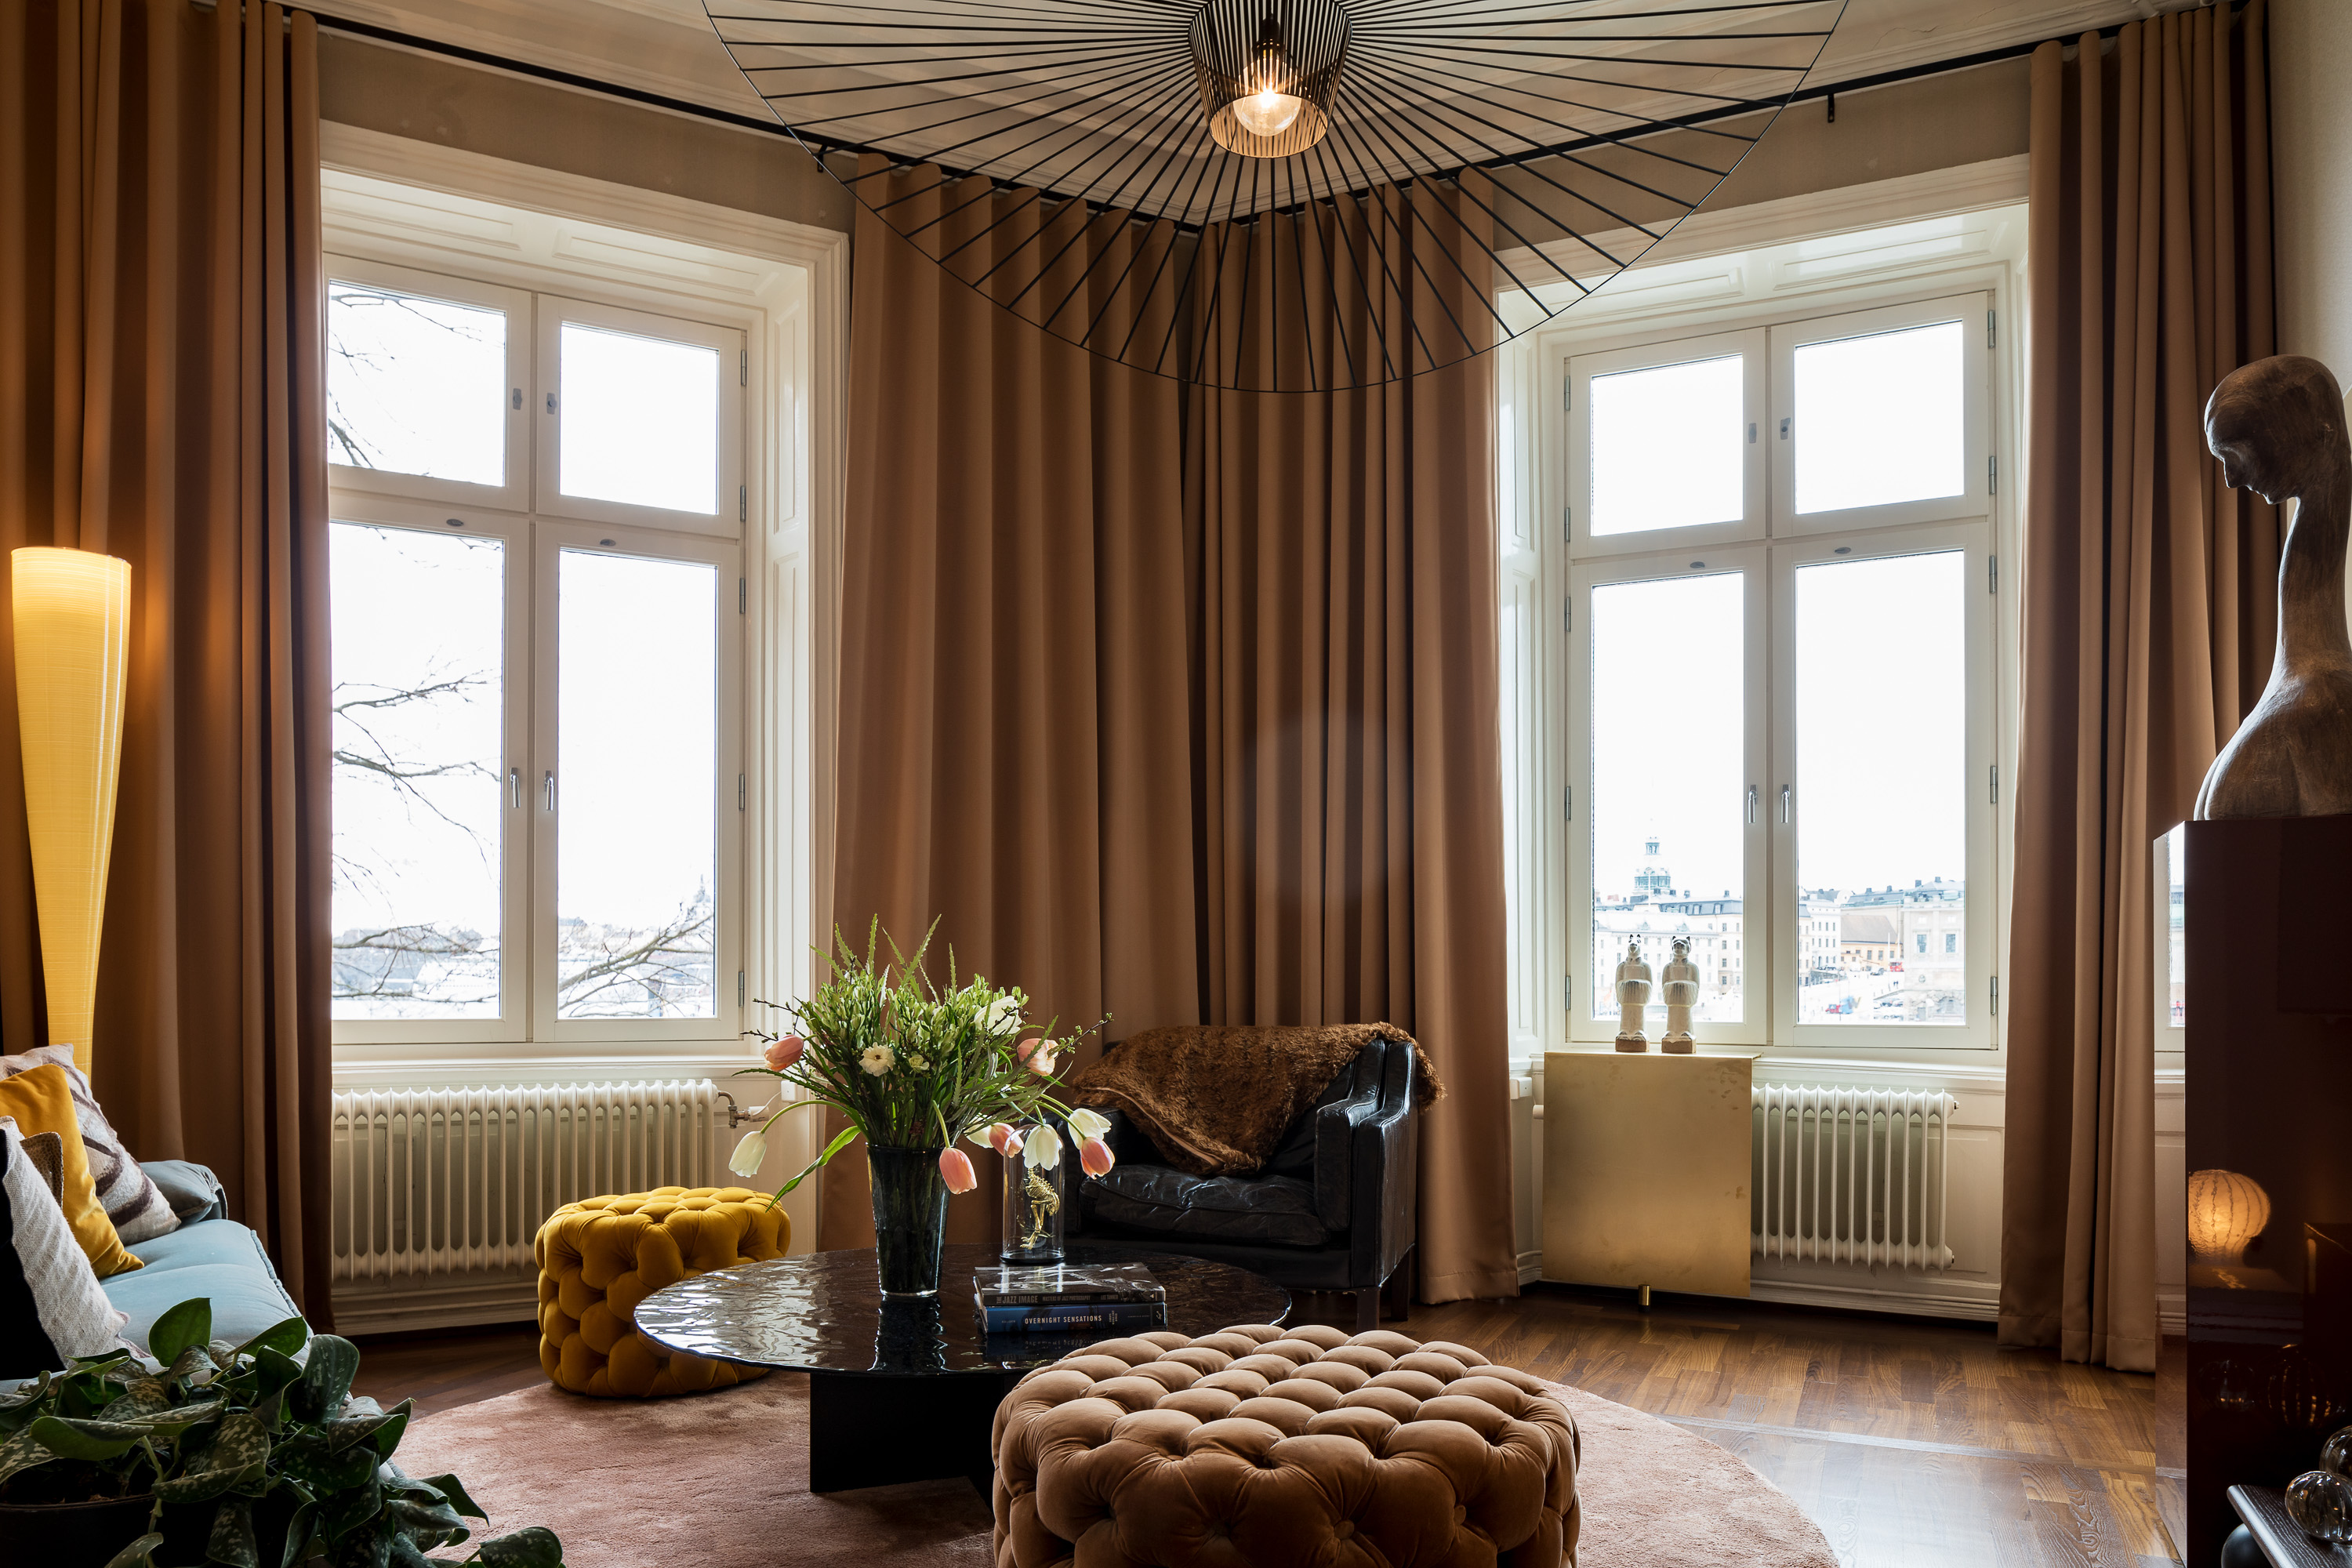 LYDMAR HOTEL TAKES THE INTERIOR TO A NEW LEVEL - LYDMAR HOTEL